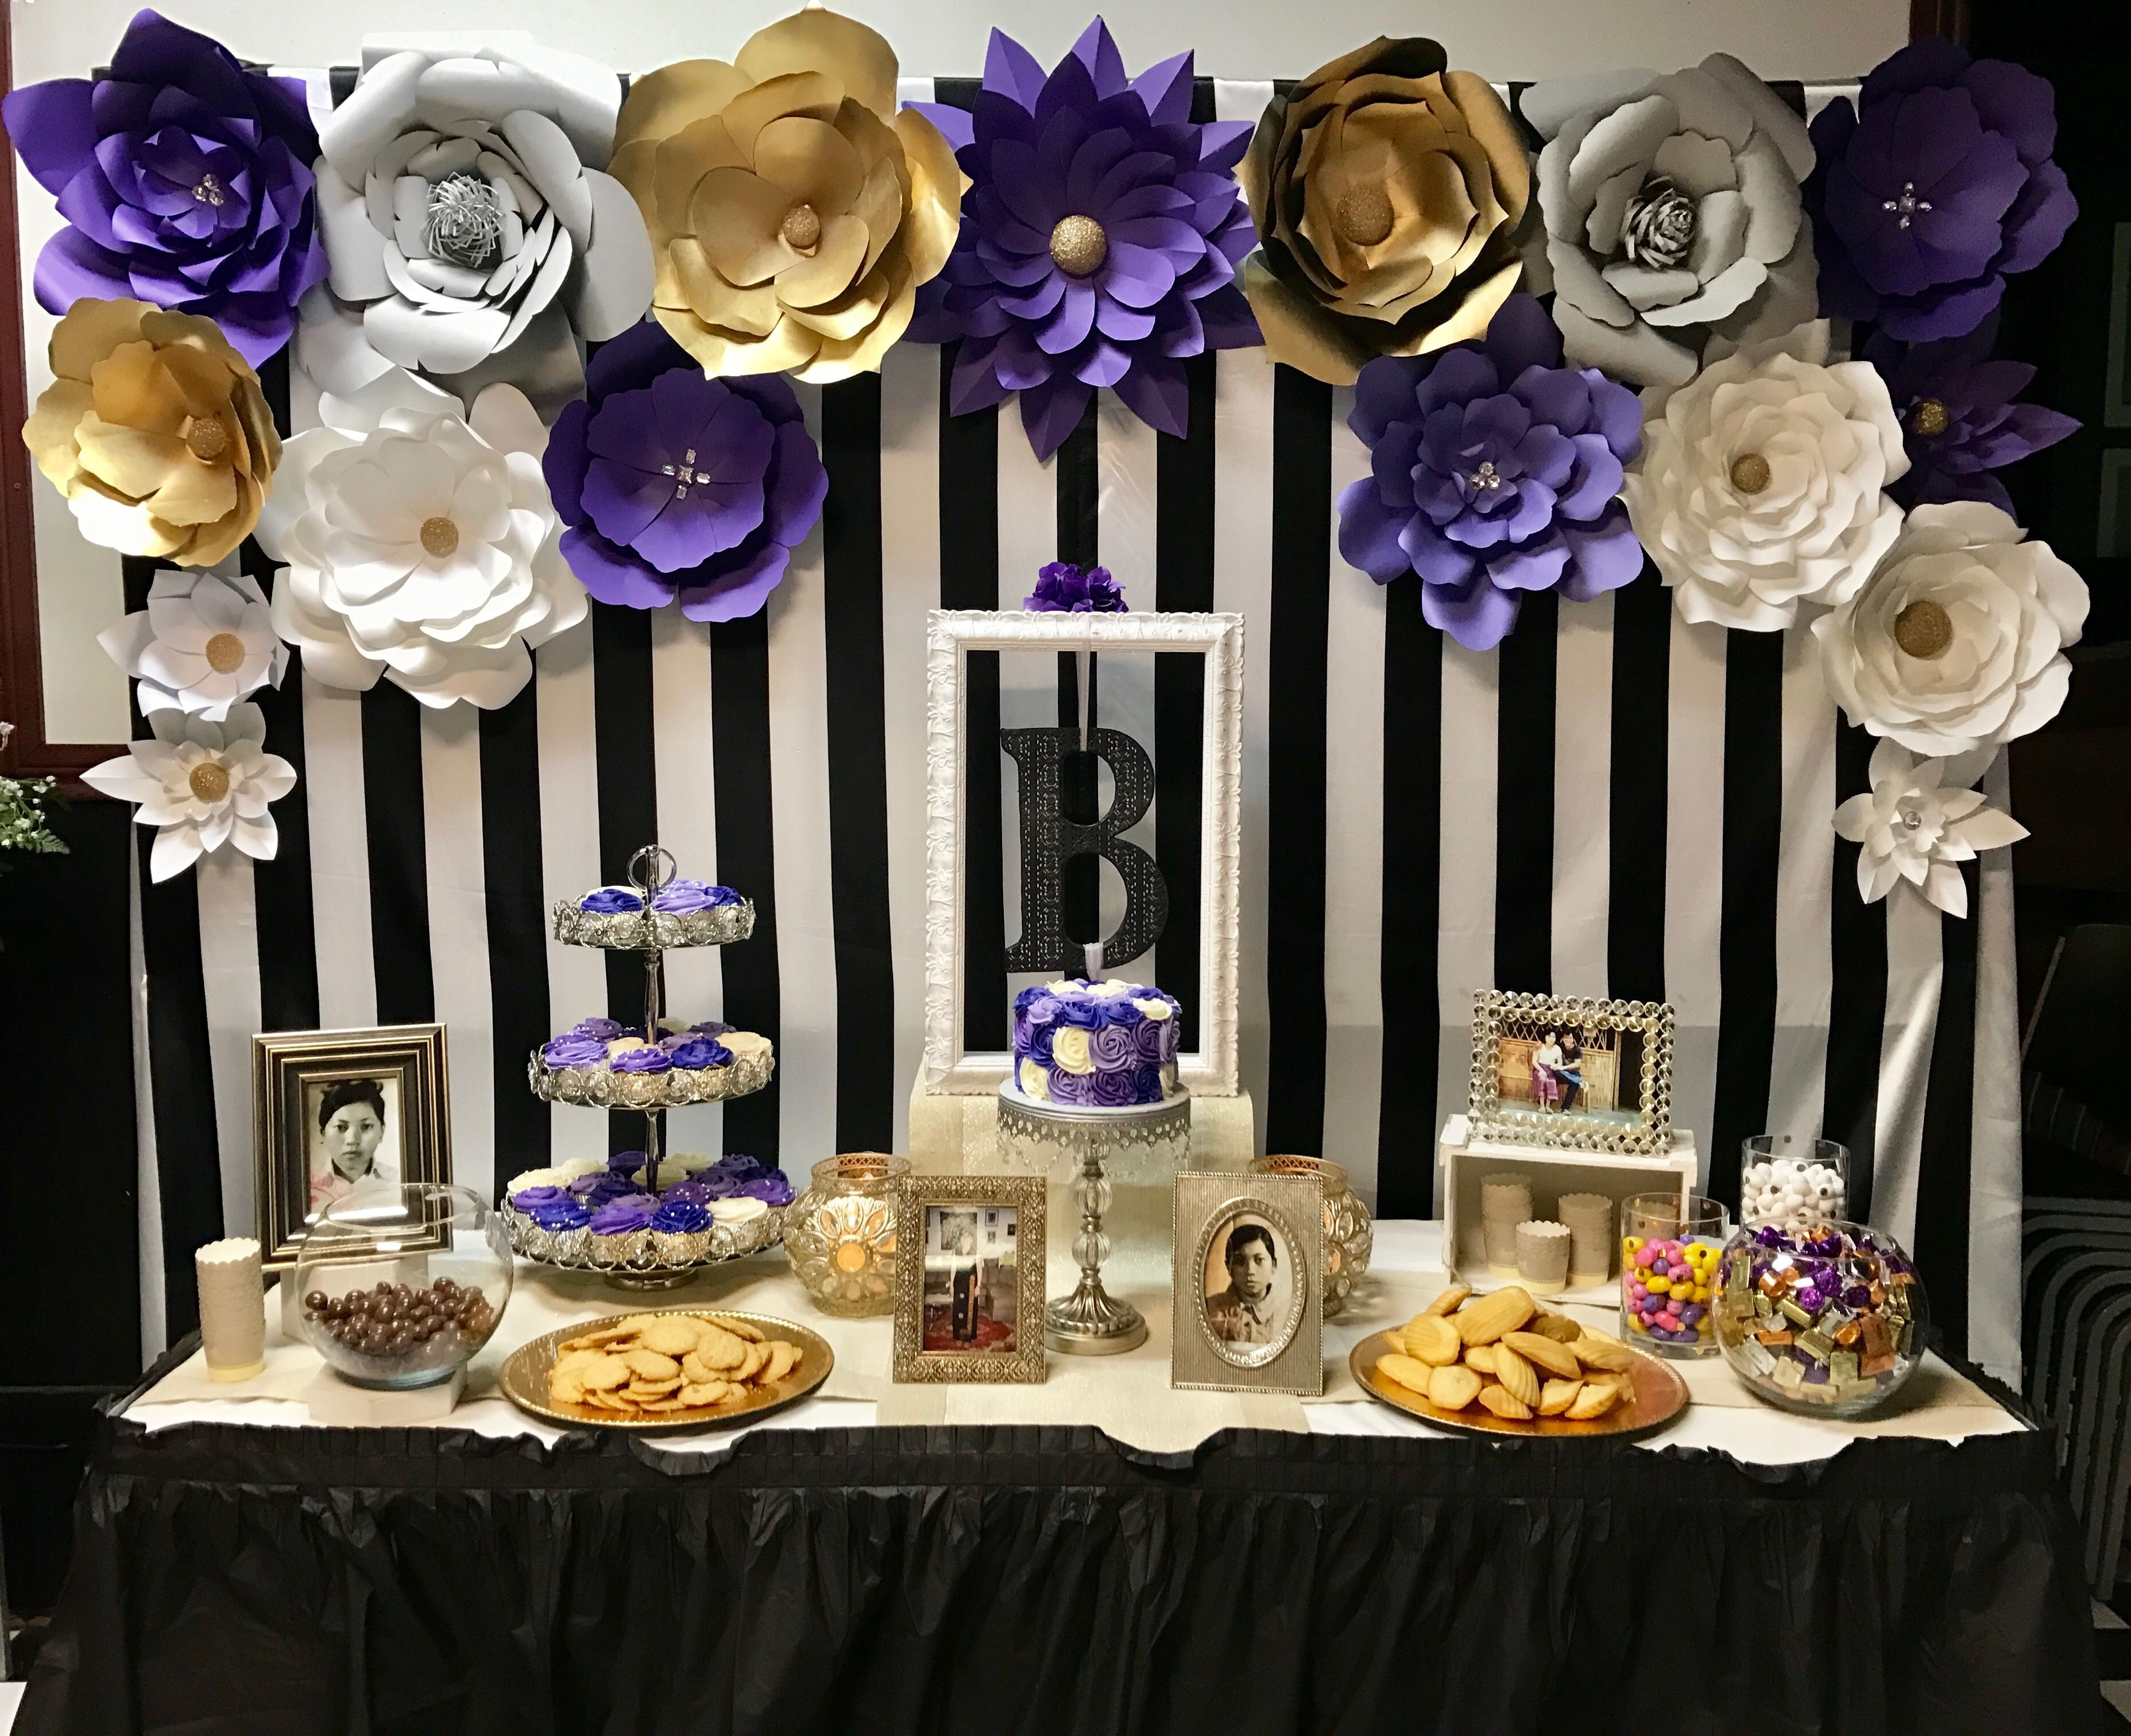 Dessert Table With Paper Flowers Backdrop For Purple Themed 60th